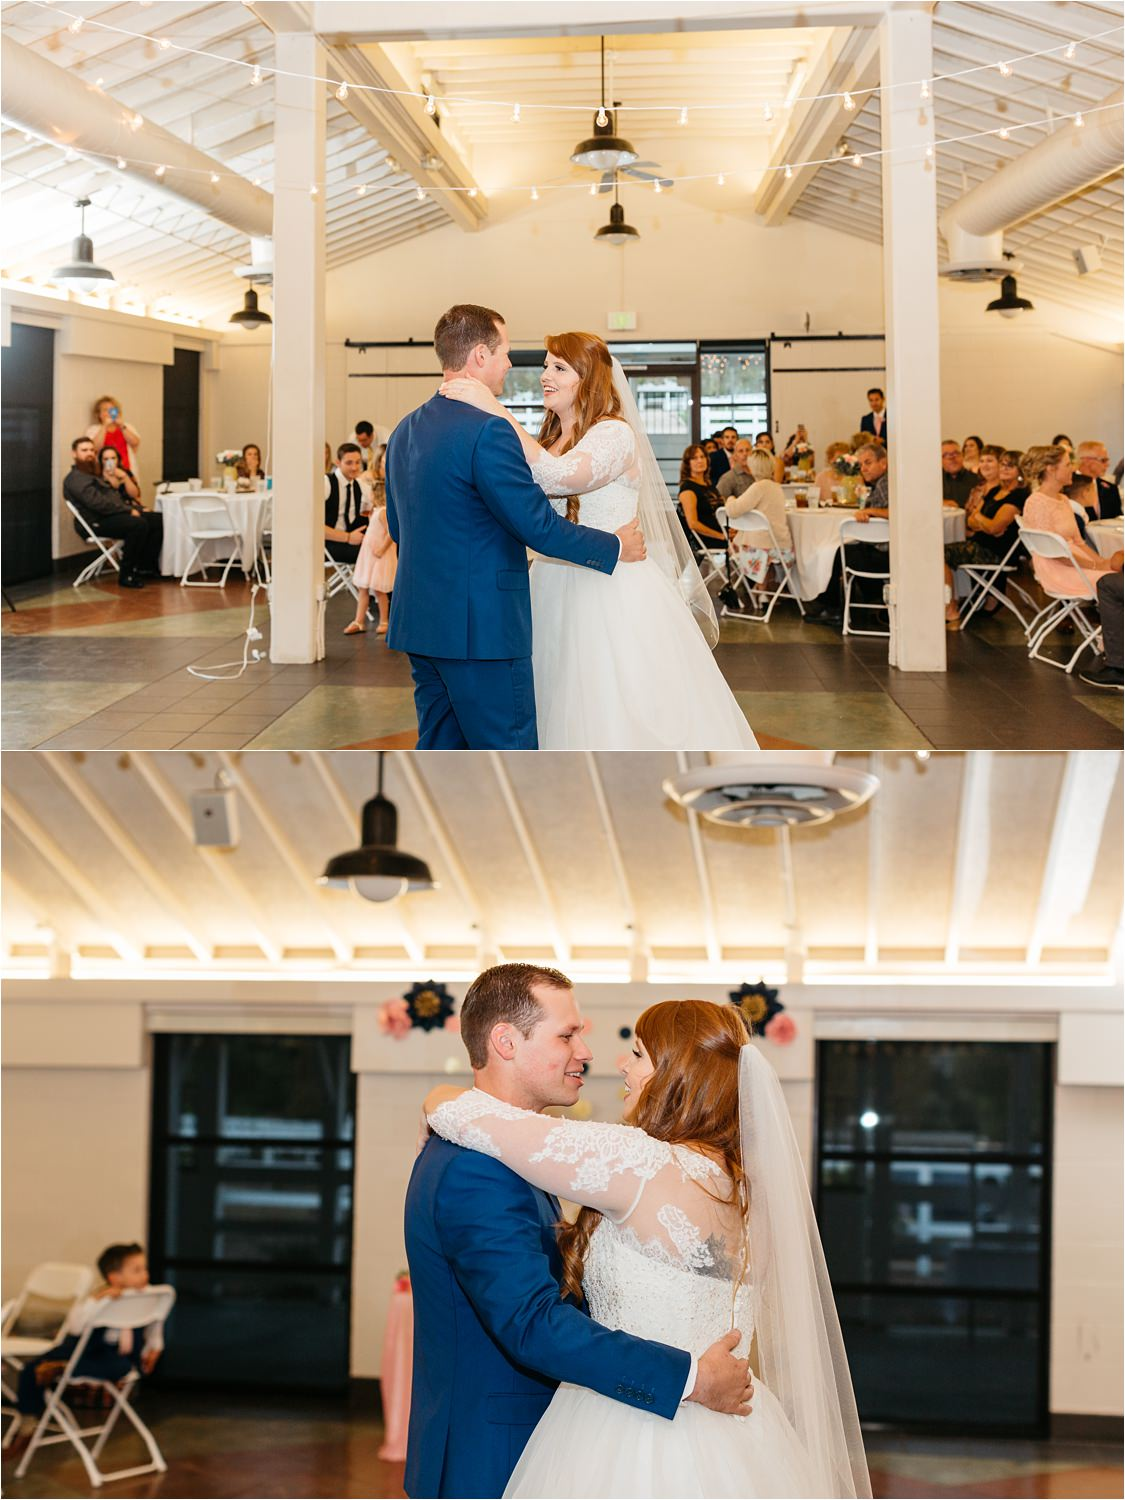 First Dance - Wedding Reception Details - Chino Hills Wedding Photographer - https://brittneyhannonphotography.com